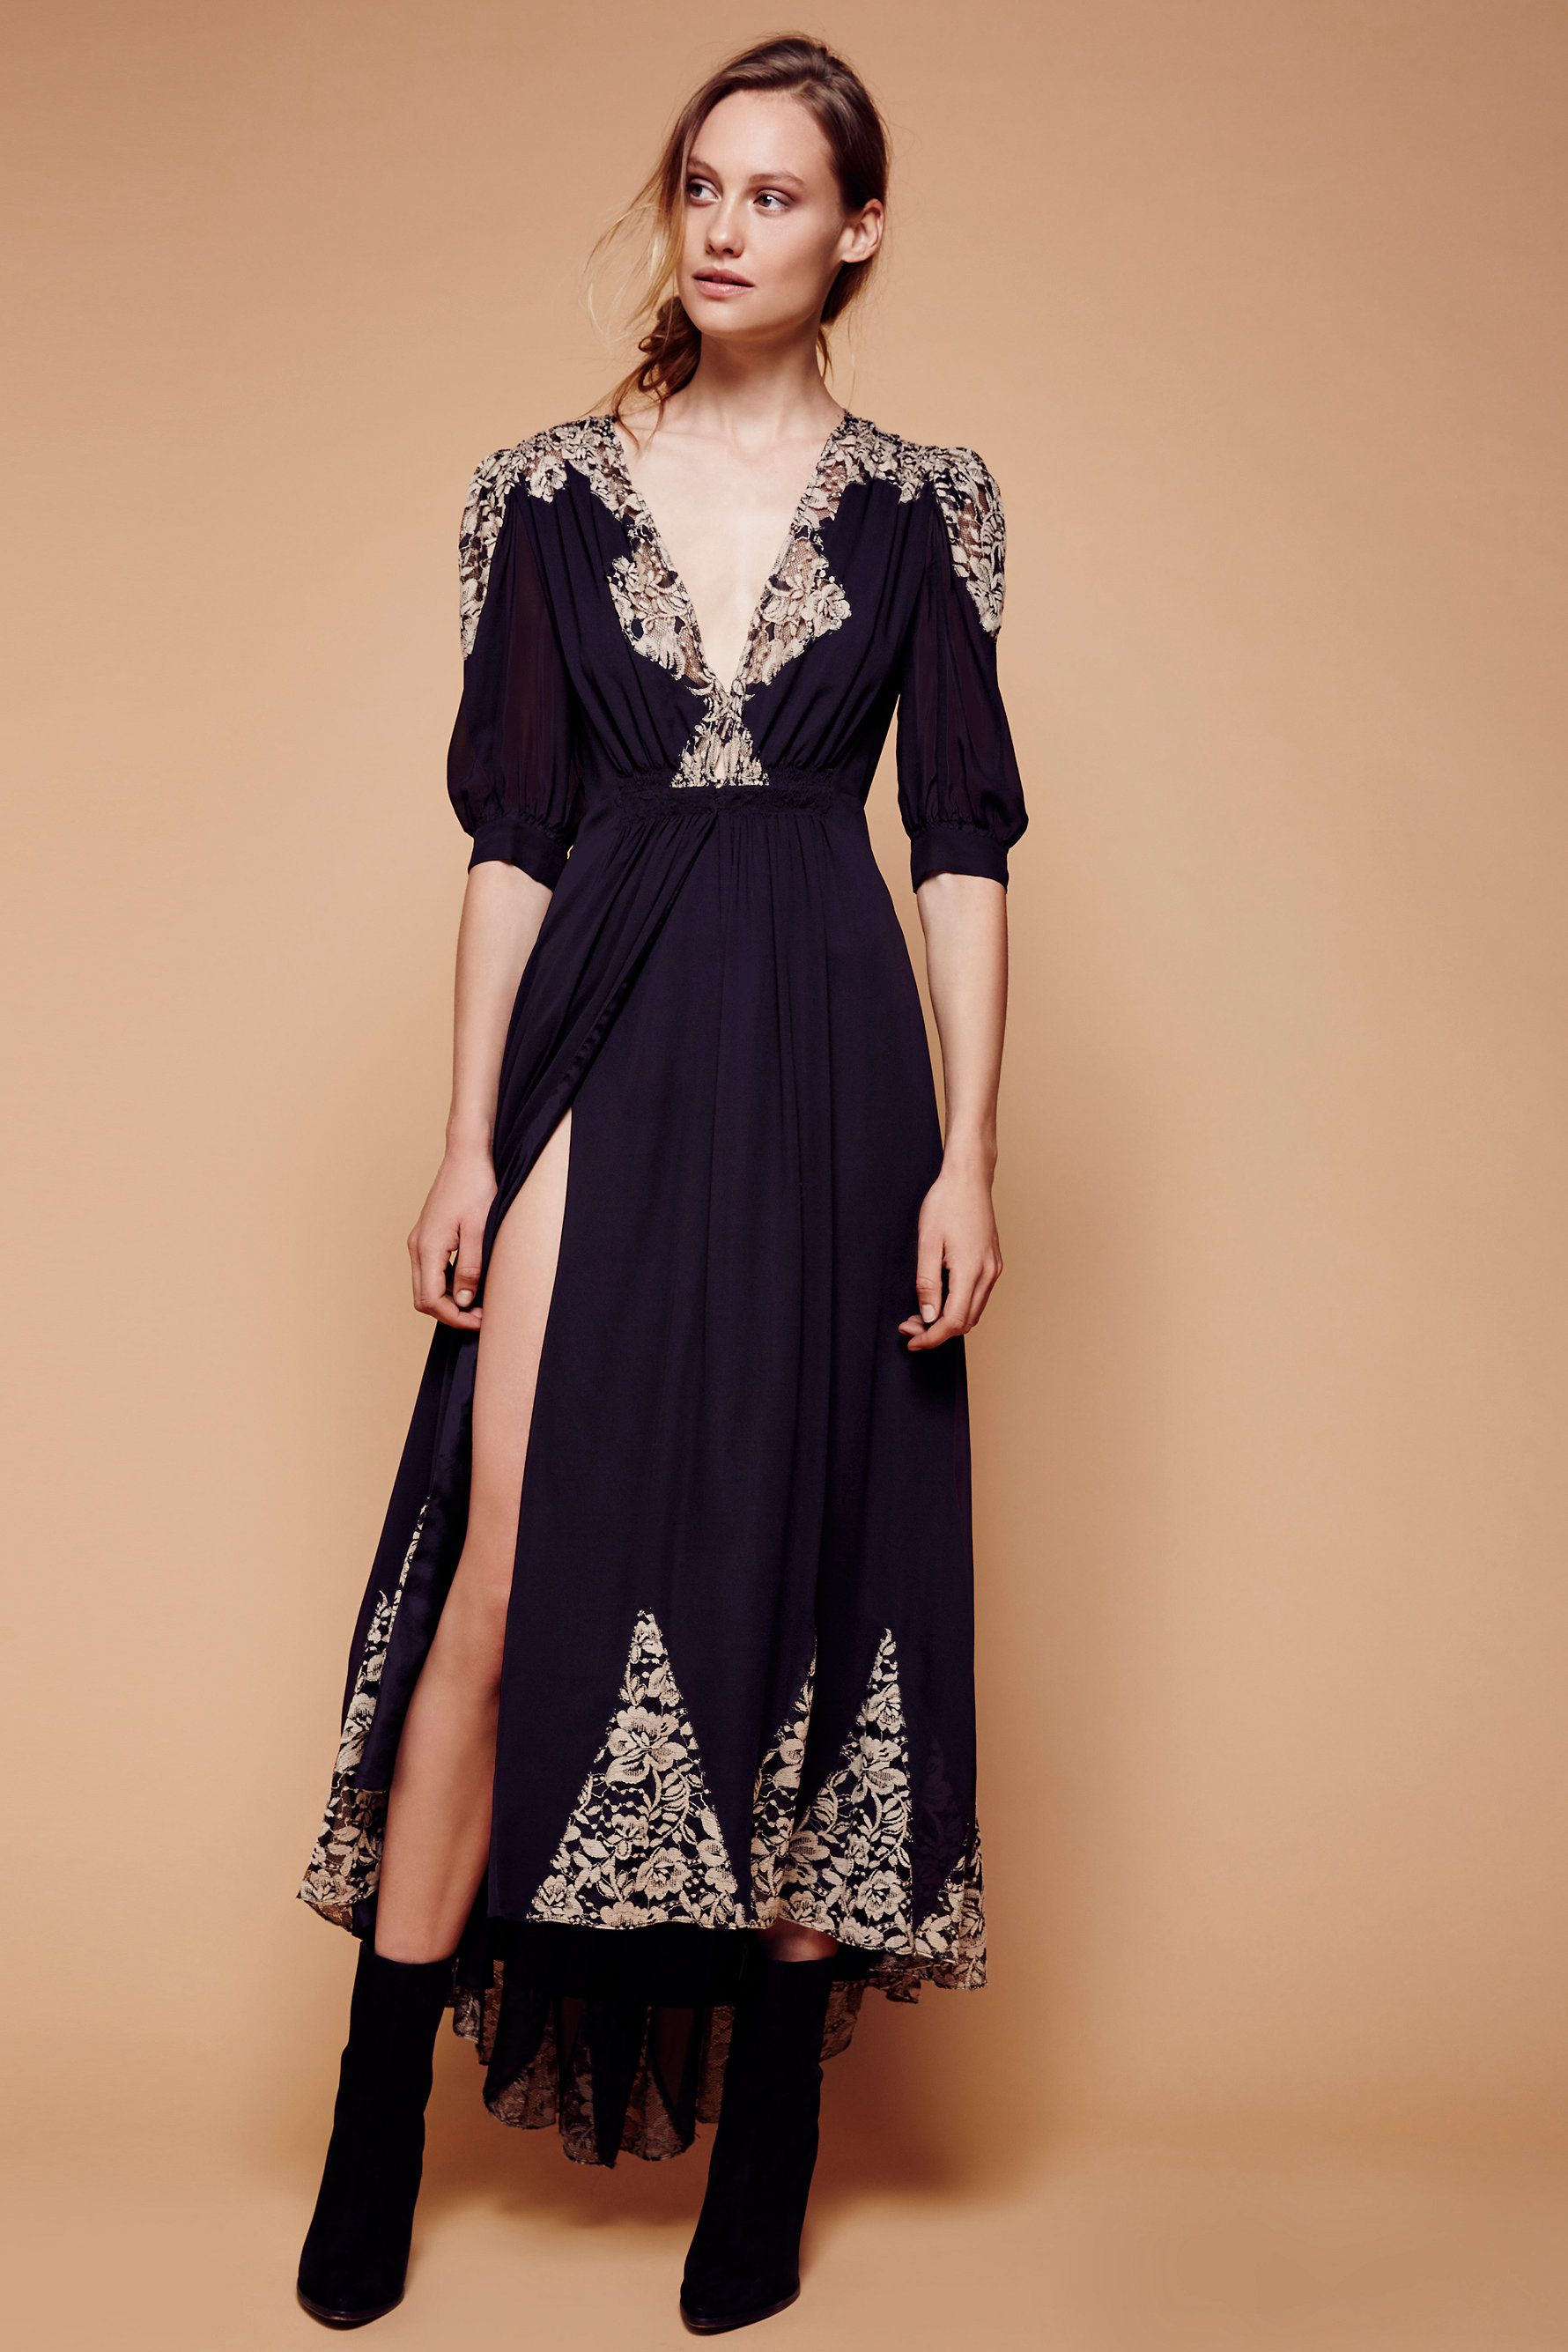 Antique lace wrap gown see above for the nightcap size chart to